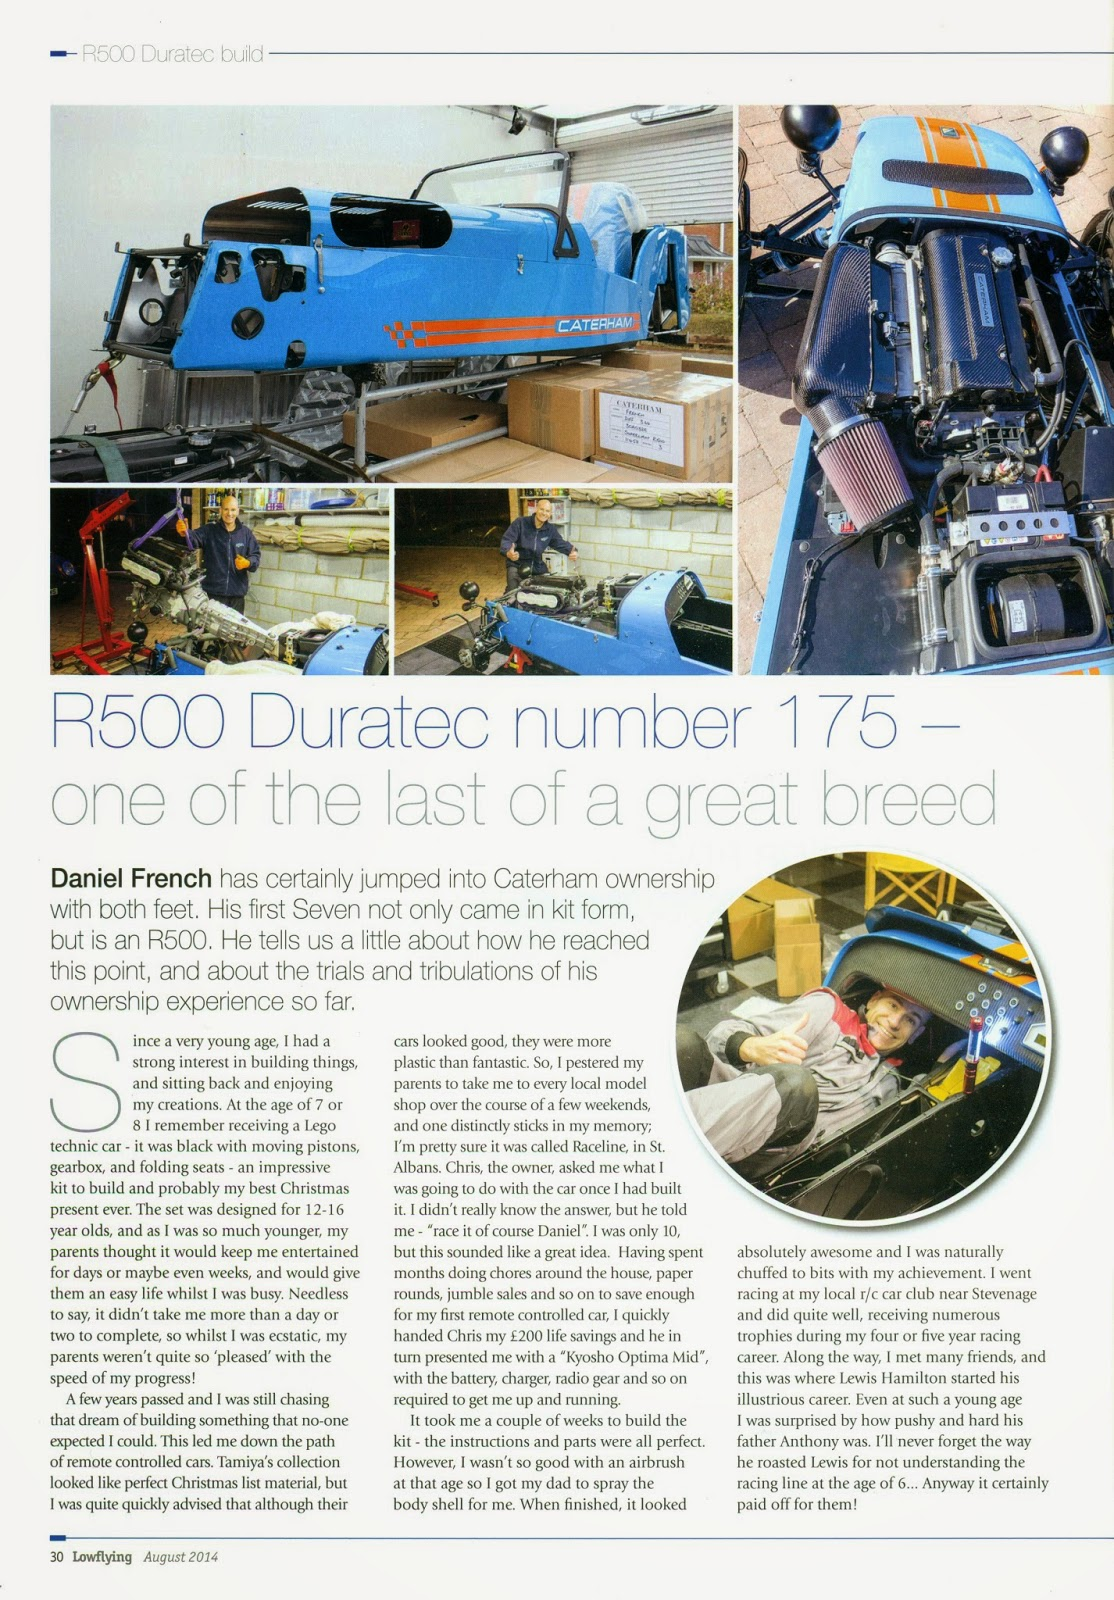 Page 30 of Lowflying Magazine - August 2014 Issue